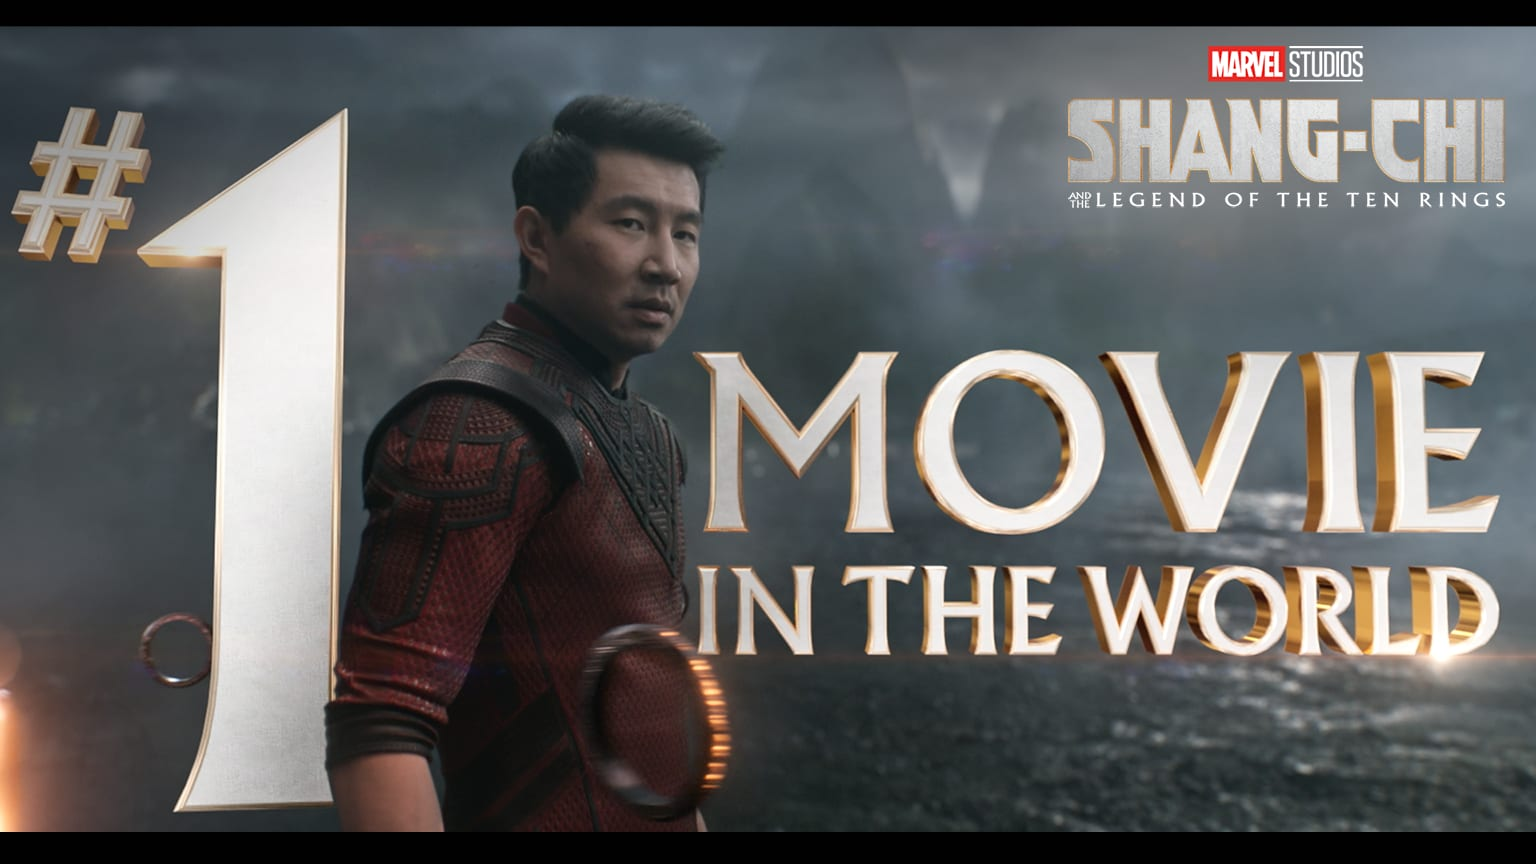 History   Marvel Studios' Shang-Chi and The Legend of The Ten Rings